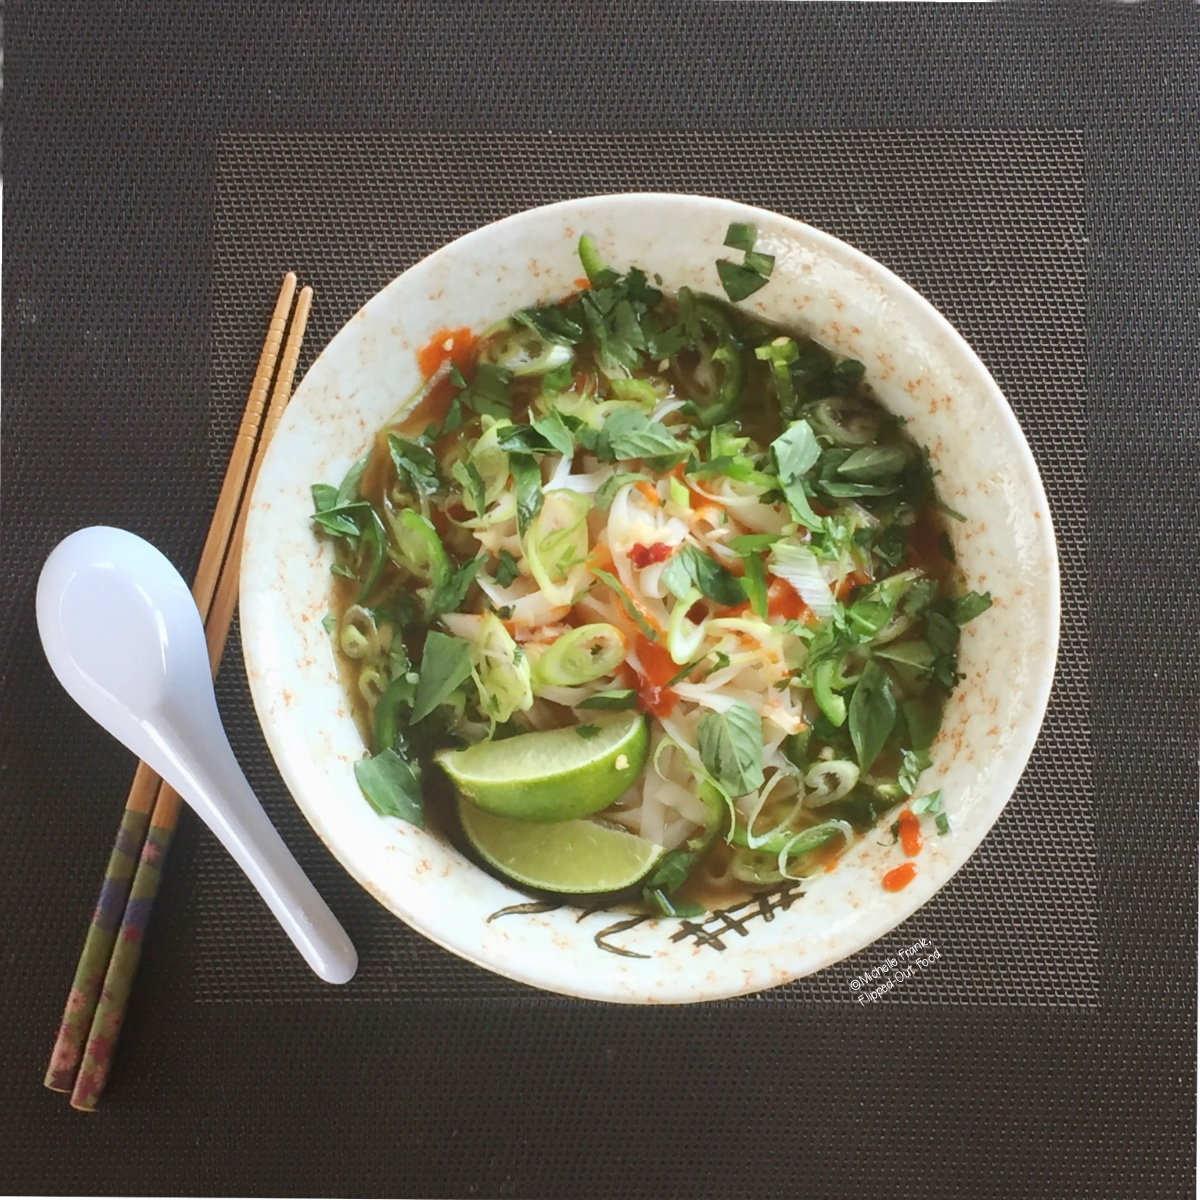 Pressure Cooker Pho Ga in a ceramic bowl sitting atop a woven placemat next to a pair of chopsticks and a spoon. The pho is piled high with herbs and aromatics, with two lime wedges and sriracha.